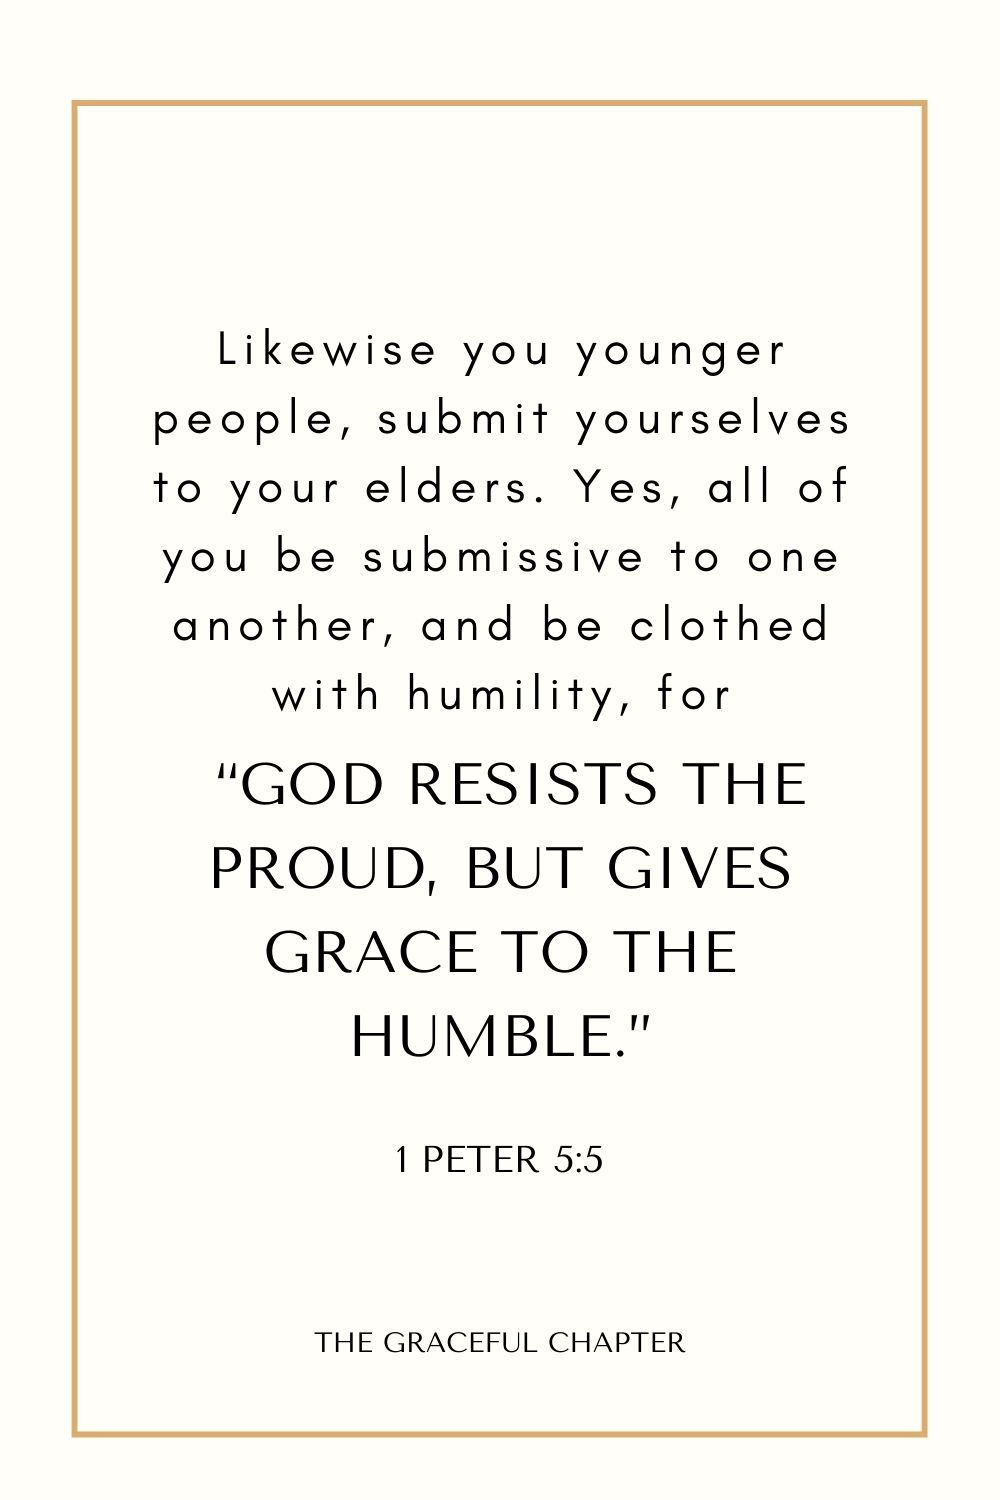 """Likewise you younger people, submit yourselves to your elders. Yes, all of you be submissive to one another, and be clothed with humility, for """"God resists the proud, But gives grace to the humble."""" 1 Peter 5:5"""